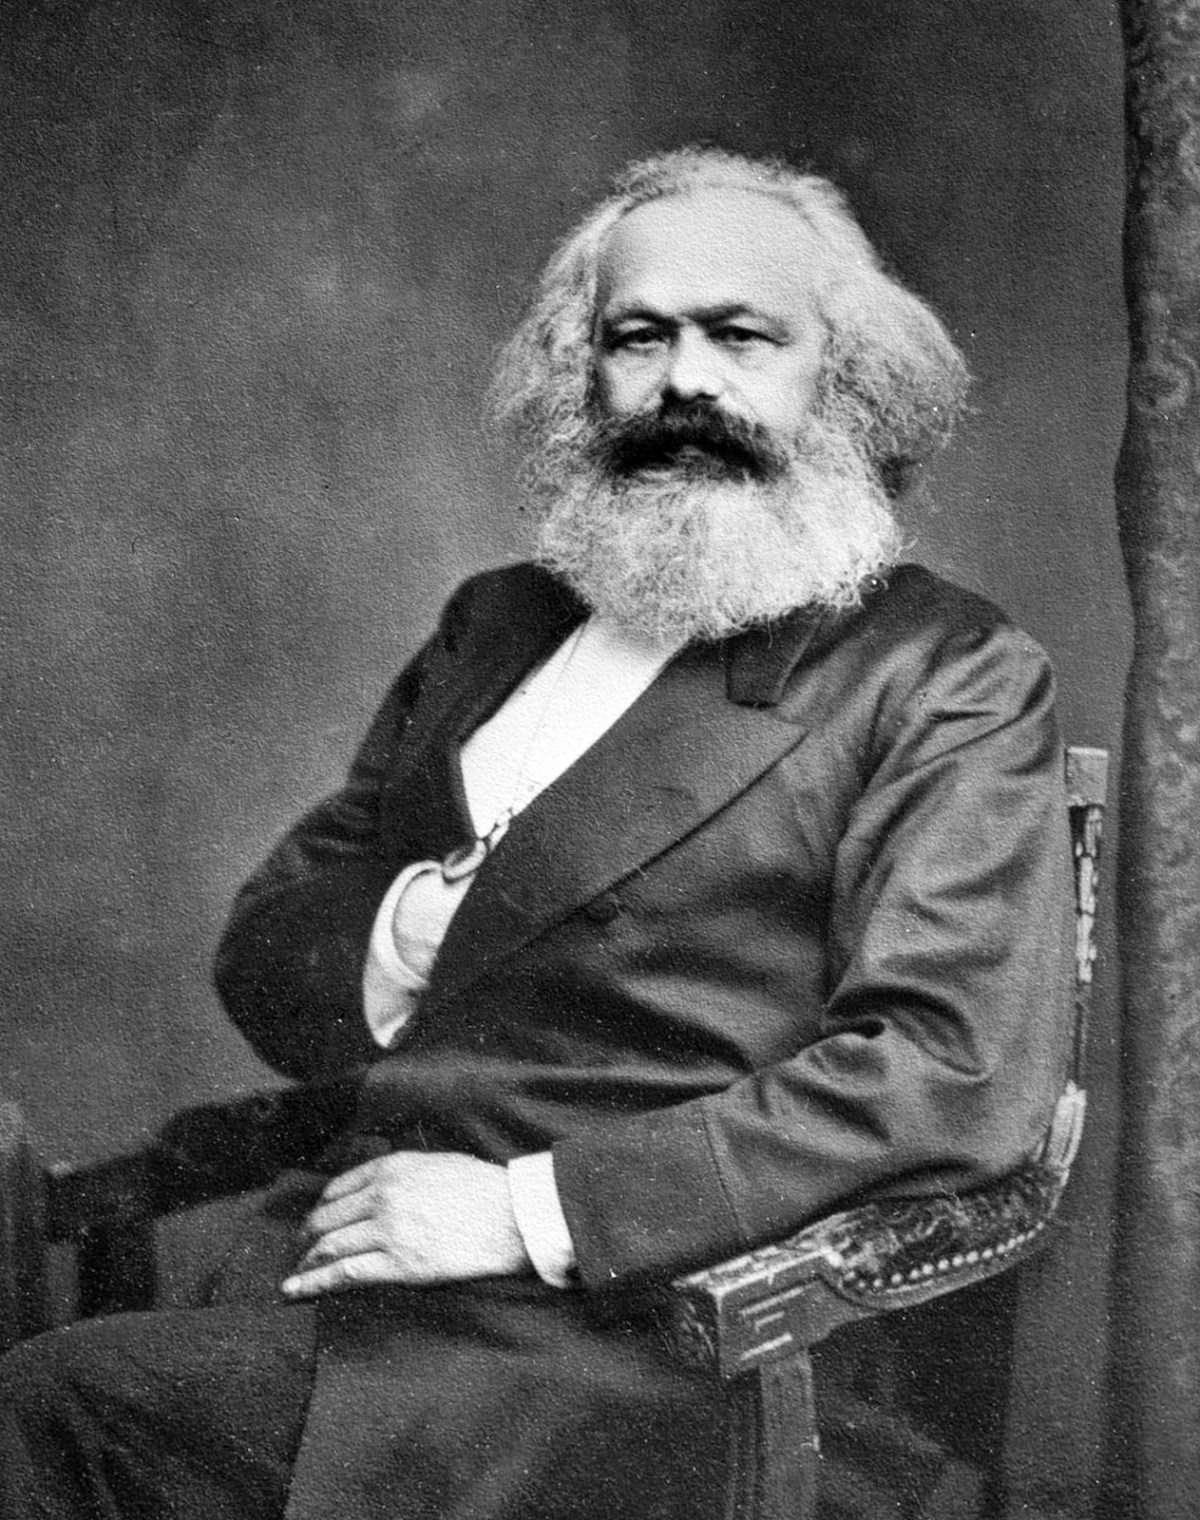 Noted Capitalist Karl Marx